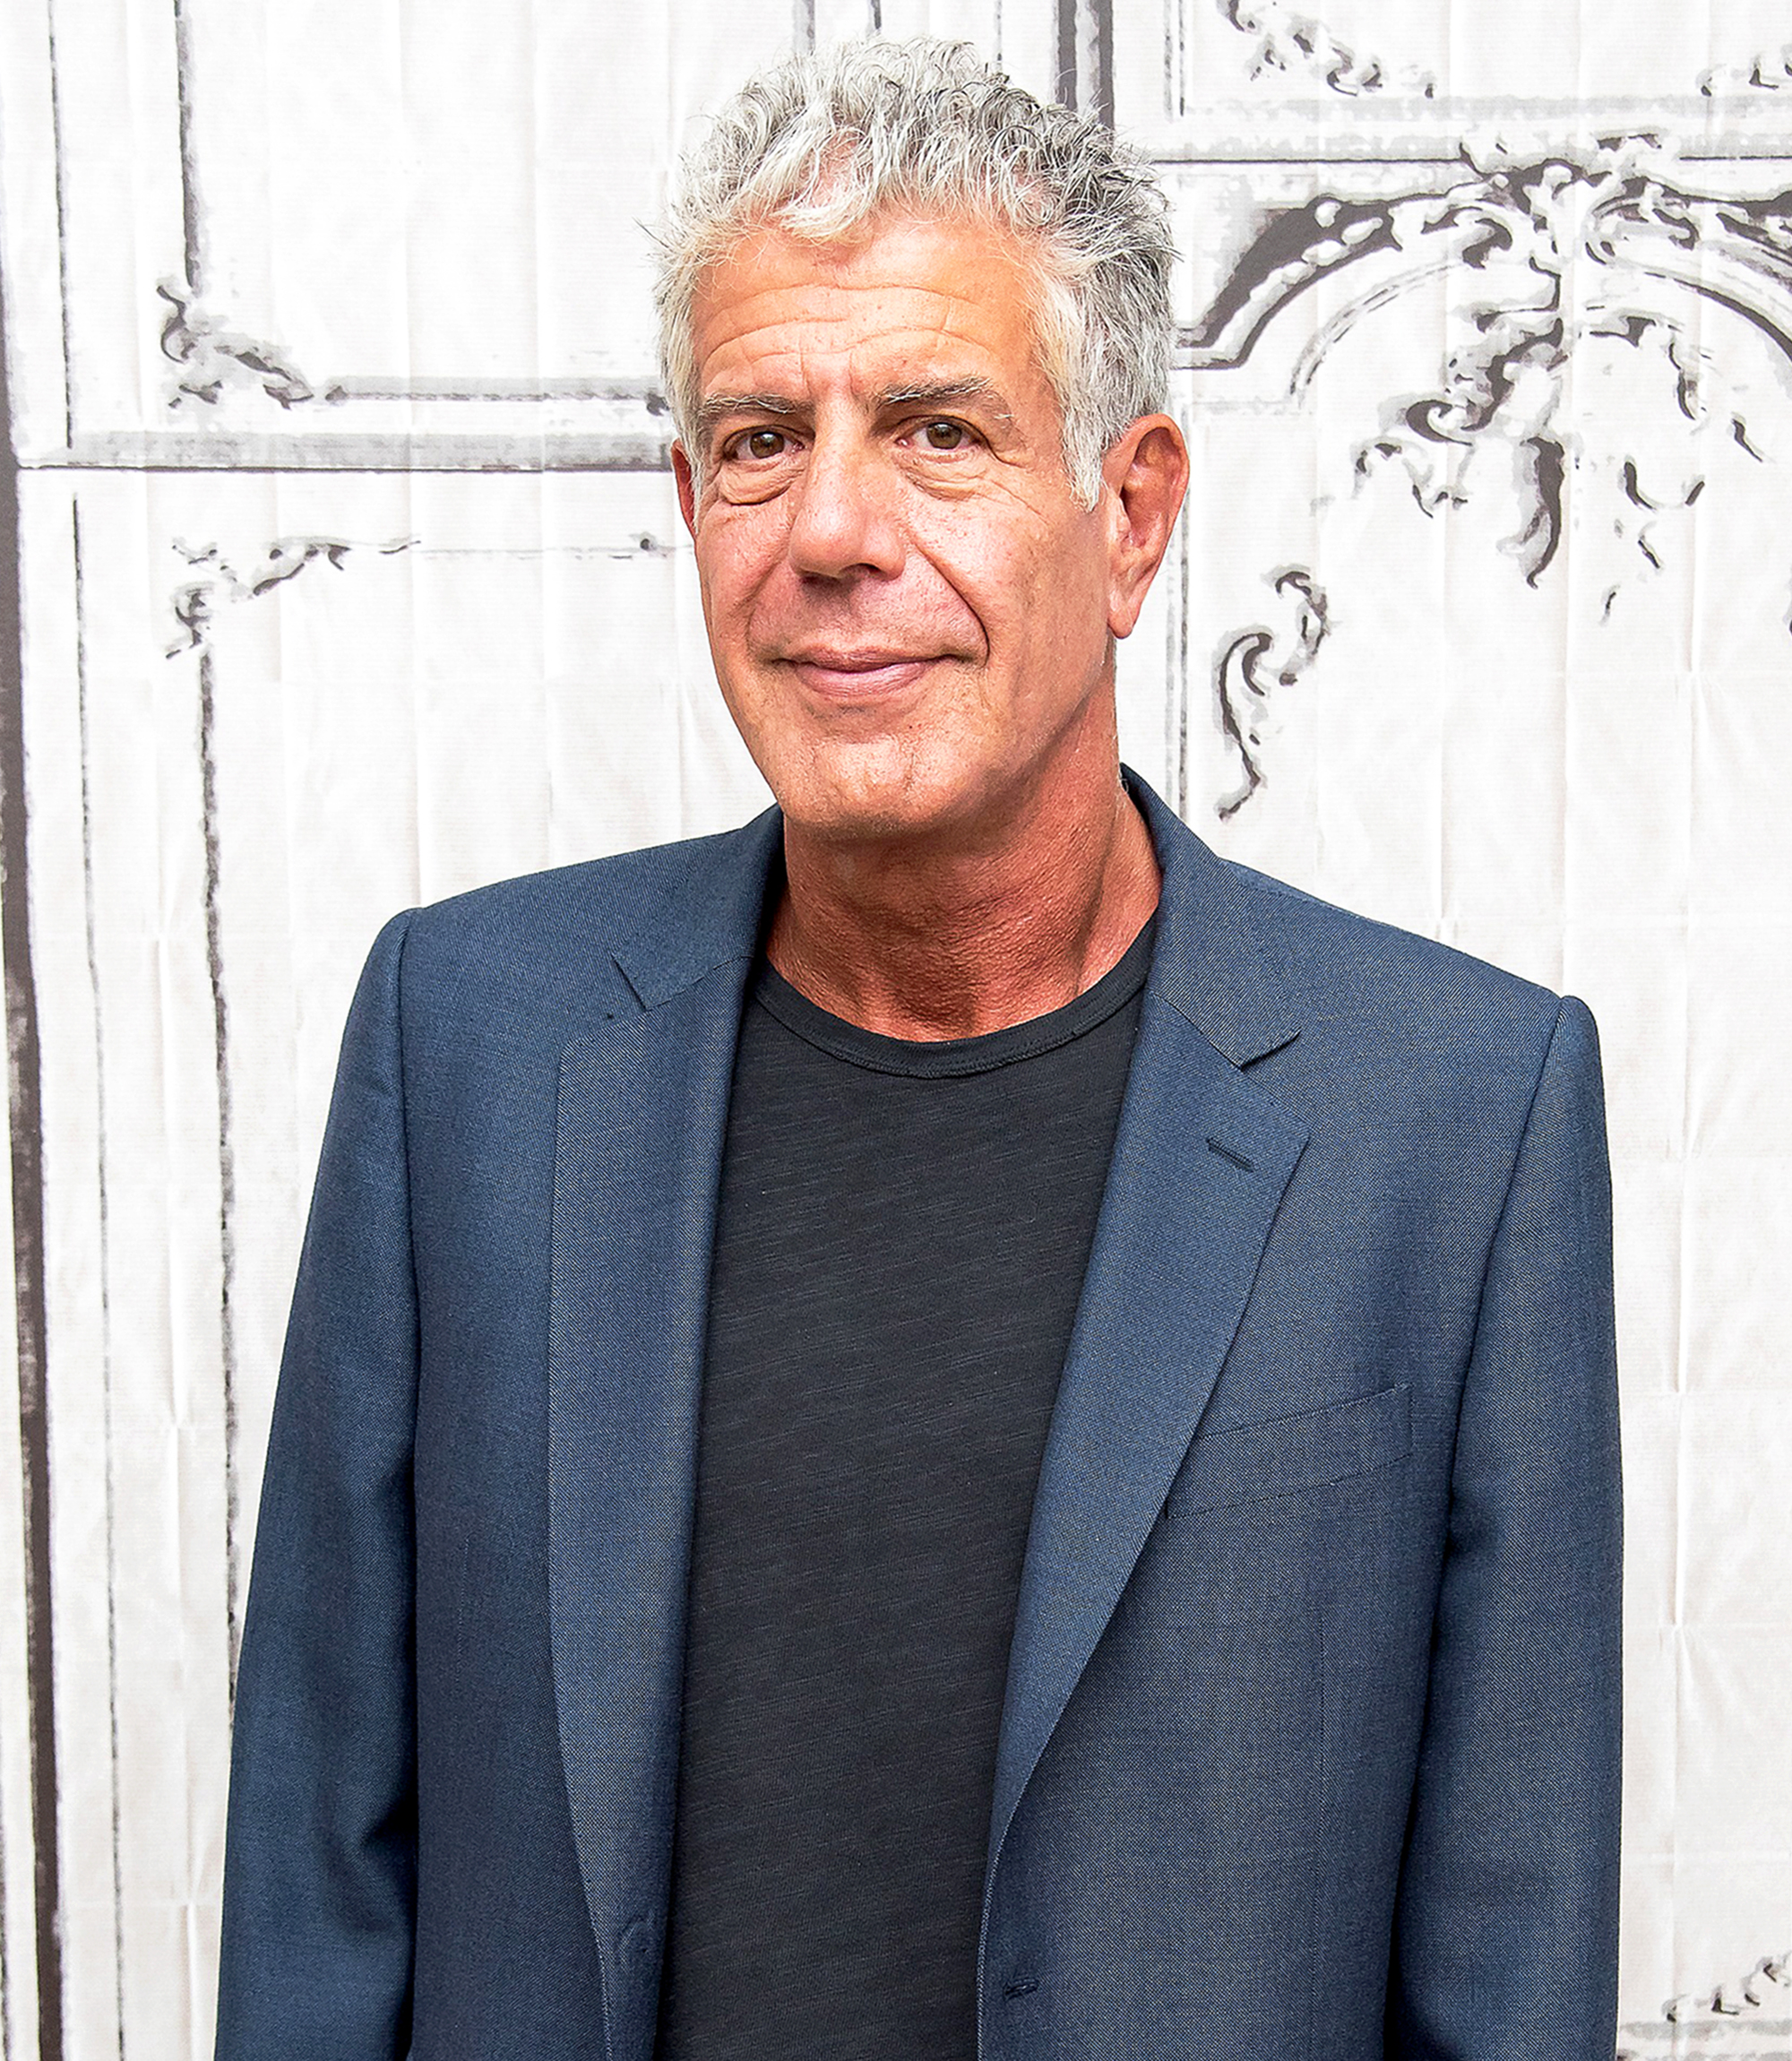 Anthony Bourdain had no narcotics in his system at time of death